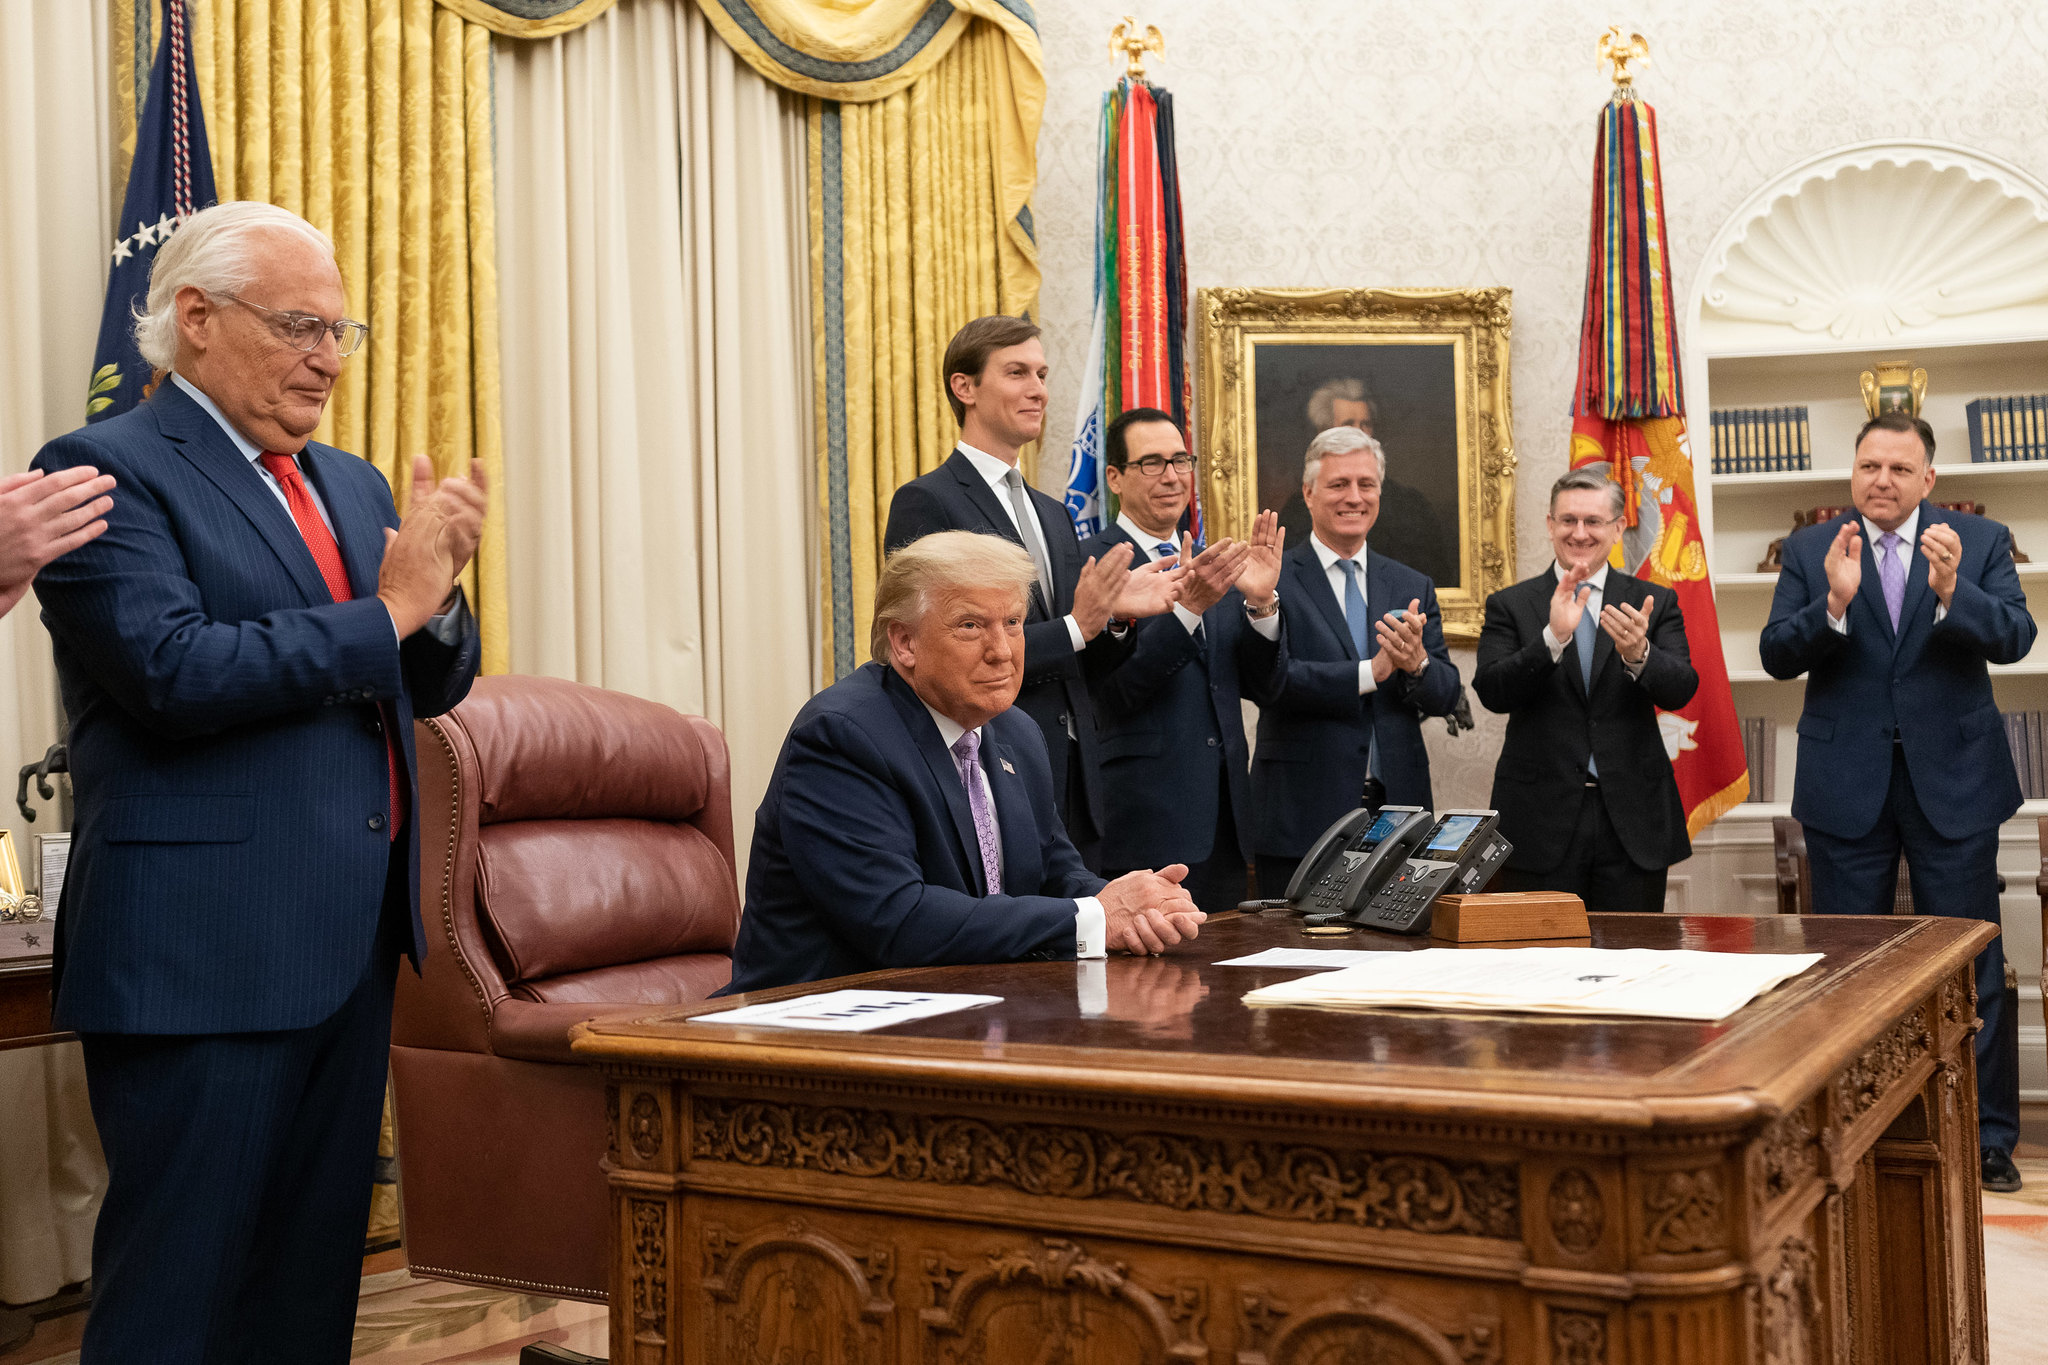 President Donald Trump, joined by White House senior staff members, delivers a statement announcing the agreement of full normalization of relations between Israel and the United Arab Emirates Thursday, Aug. 13, 2020, in the Oval Office of the White House. (Official White House Photo by Joyce N. Boghosian)